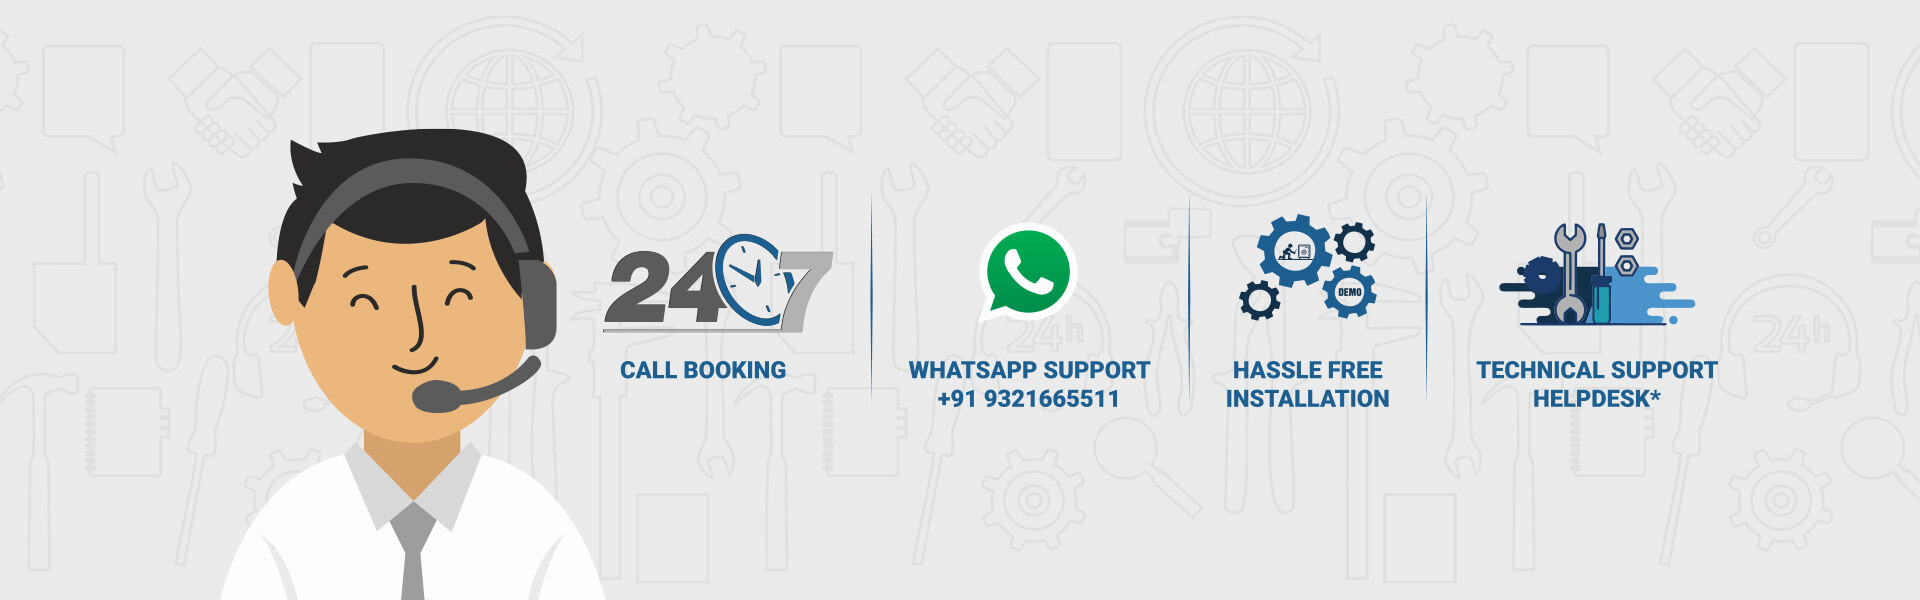 Godrej Security Solutions - Support Centre